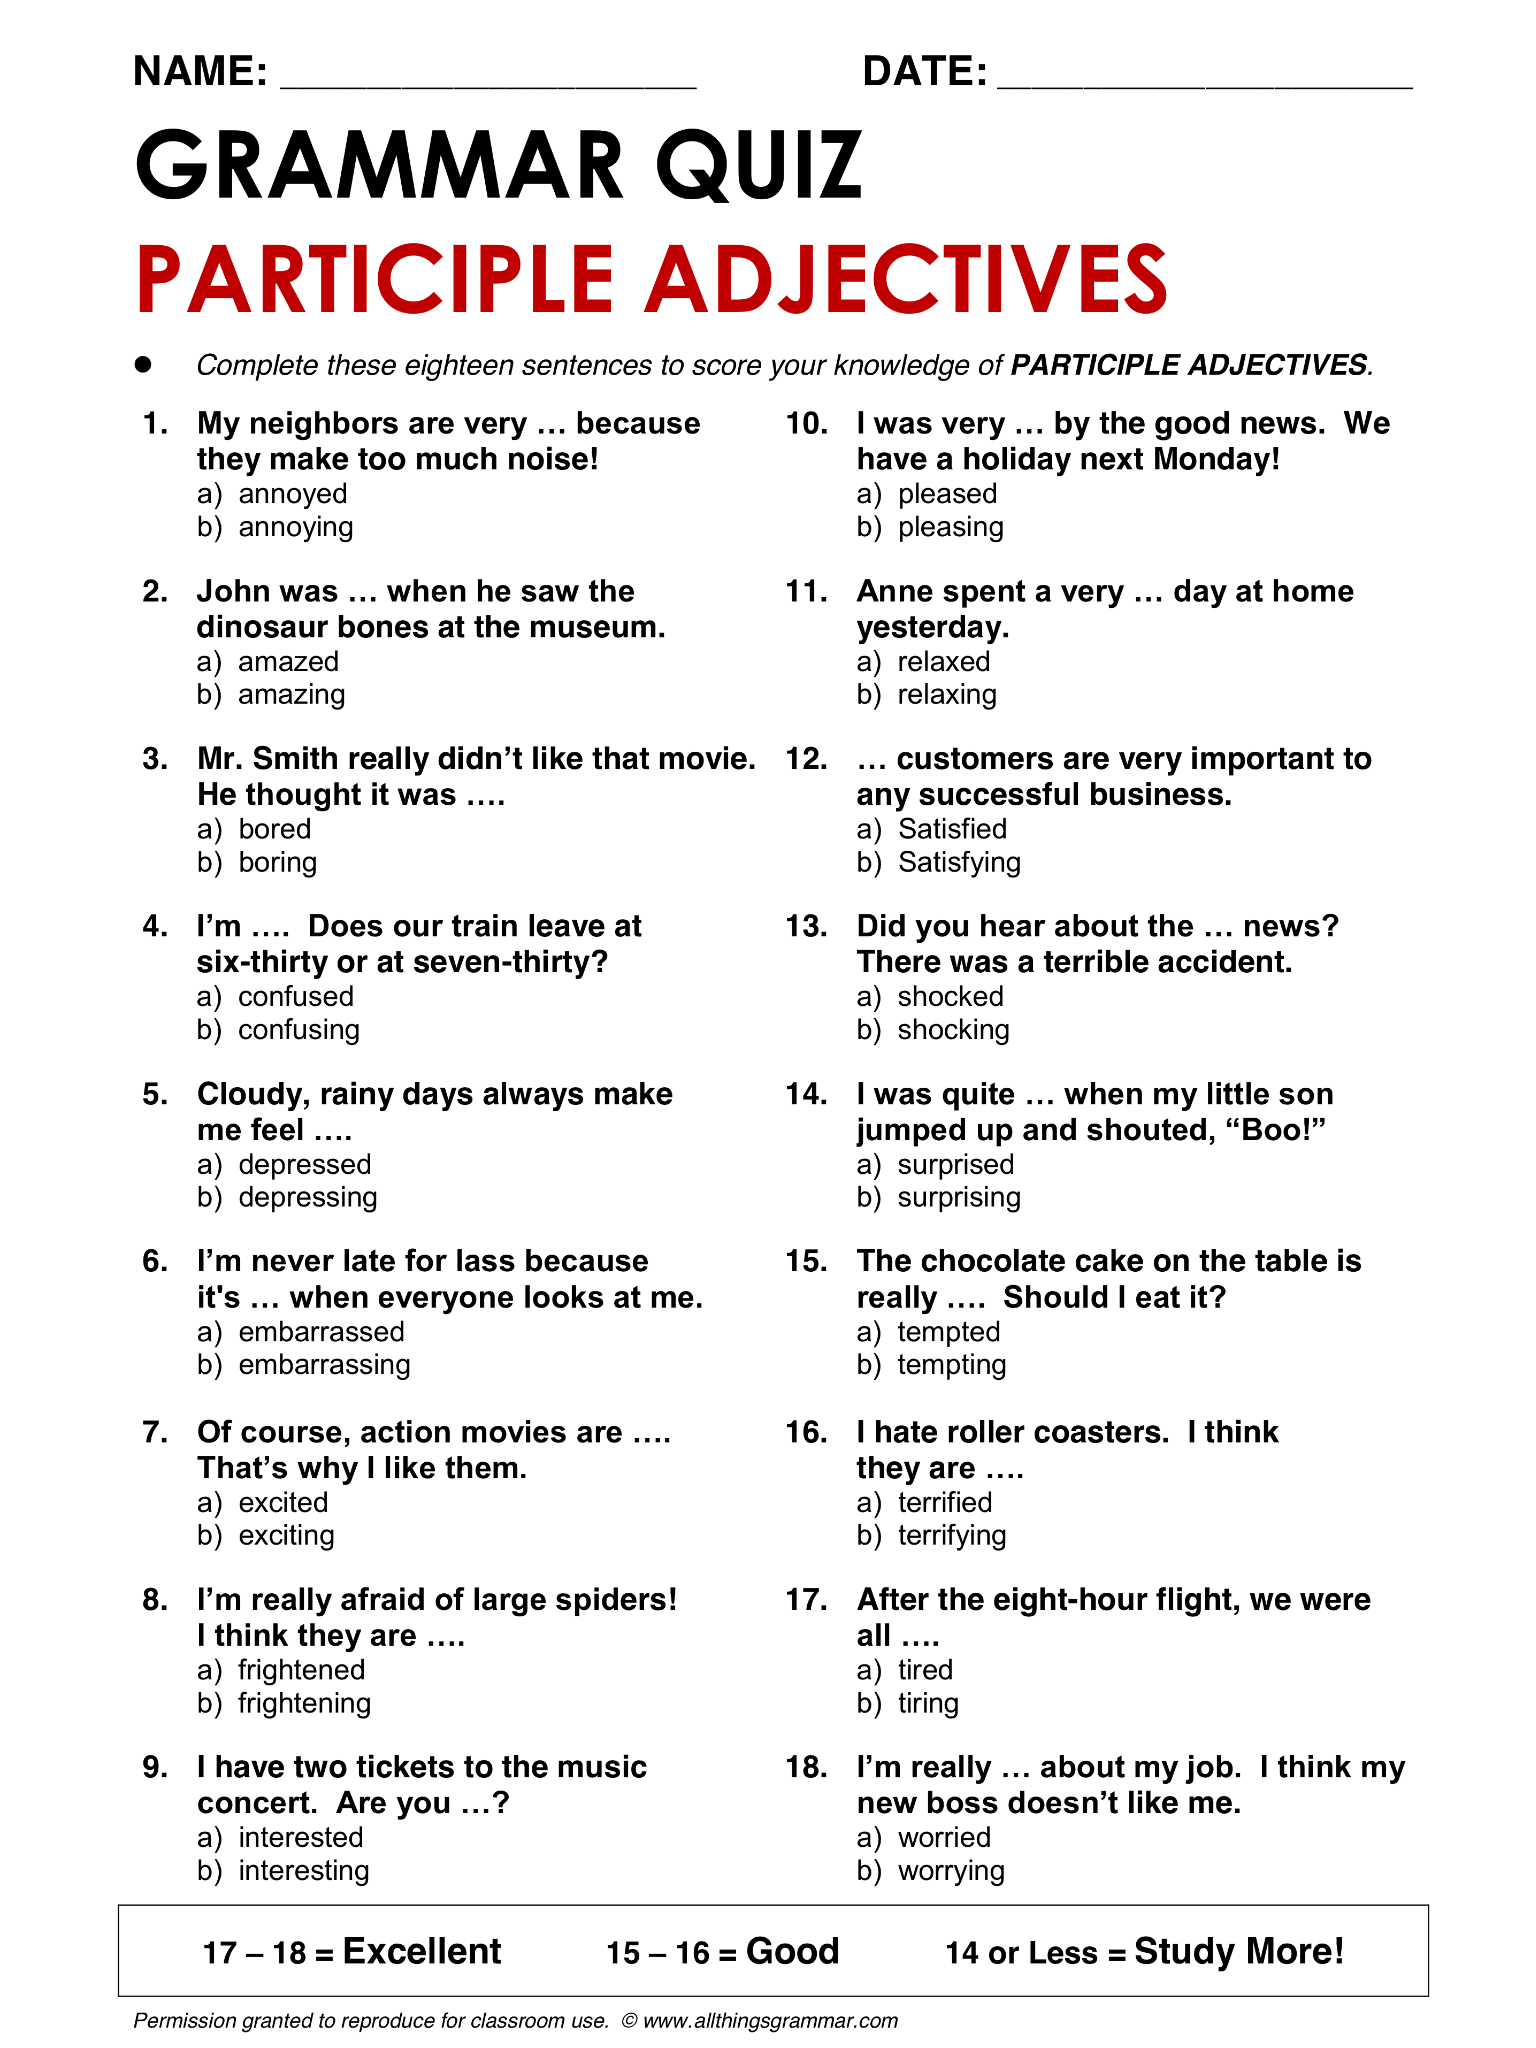 English Grammar Participle Adjectives Lthingsgrammar Participle Adjectives Ed Vs Ing